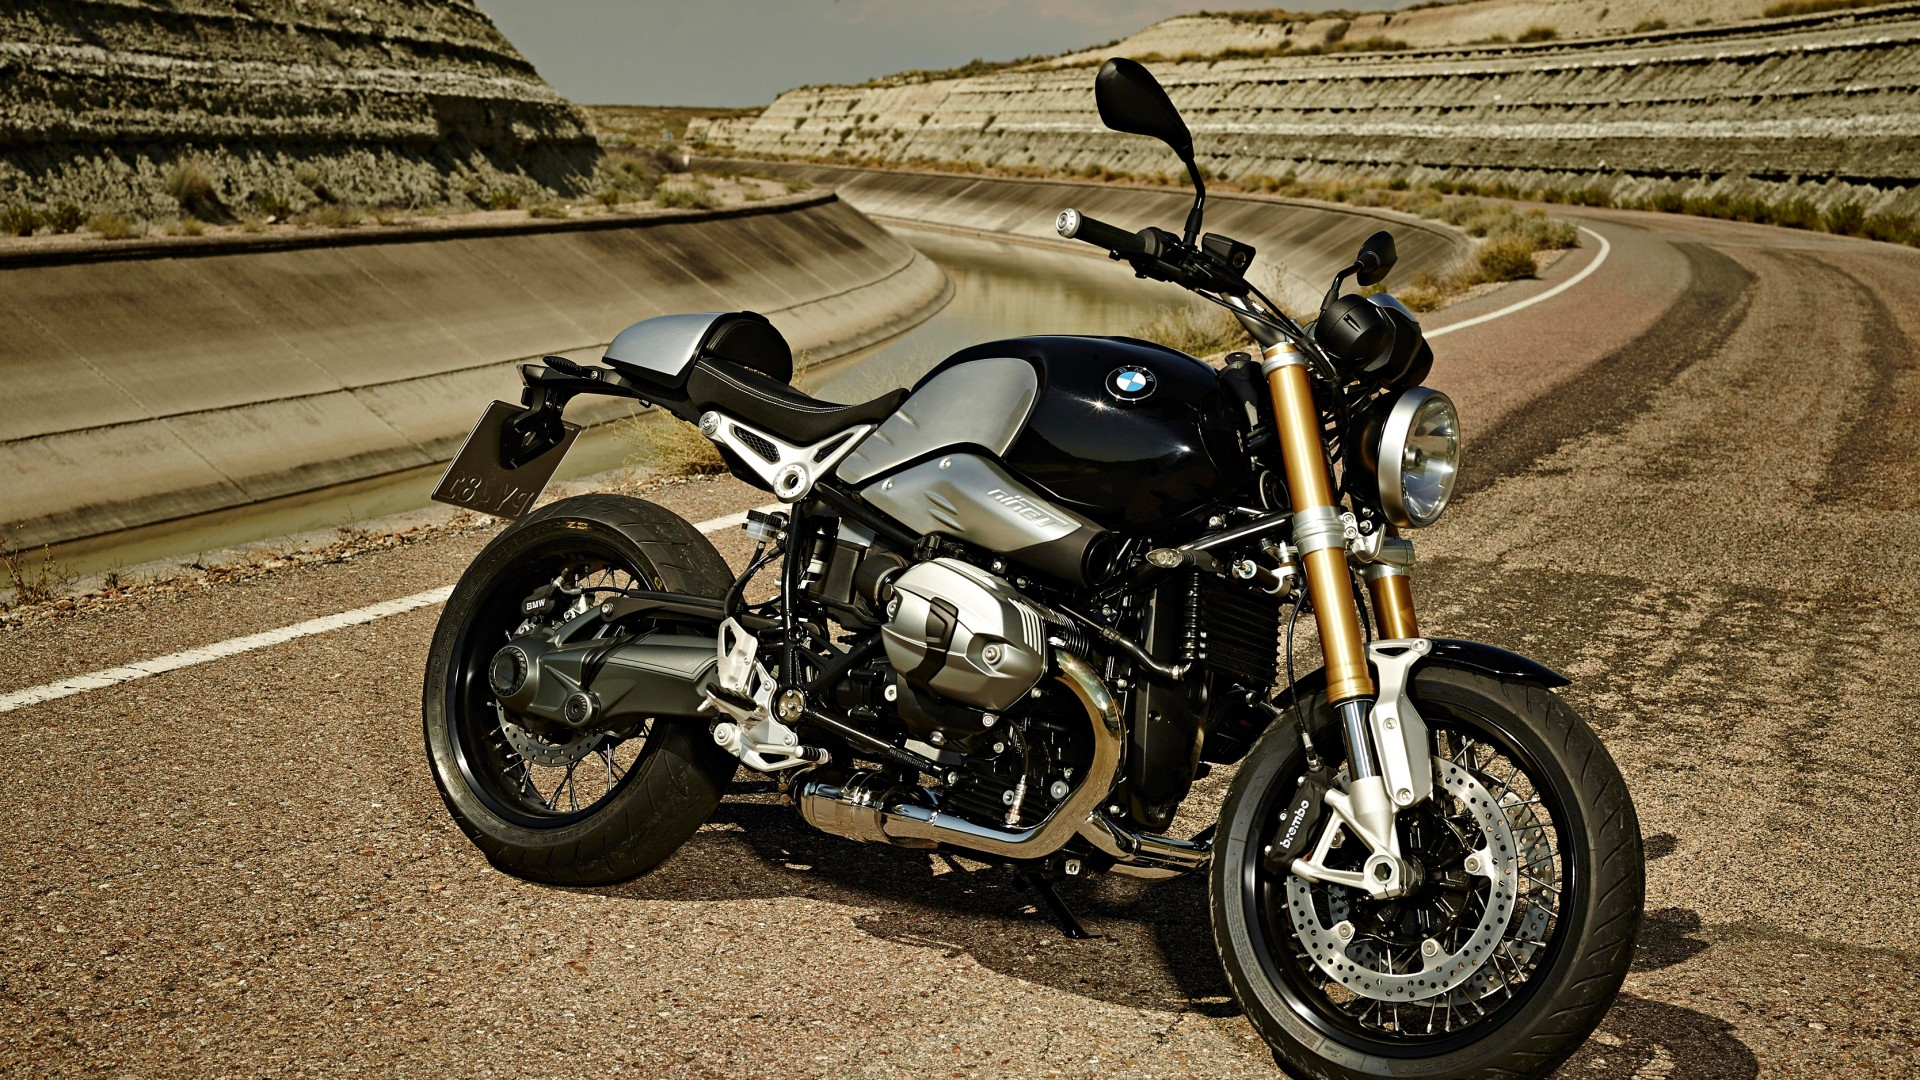 Wallpaper BMW R NineT, Motorcycle, 2015, Bike, Review